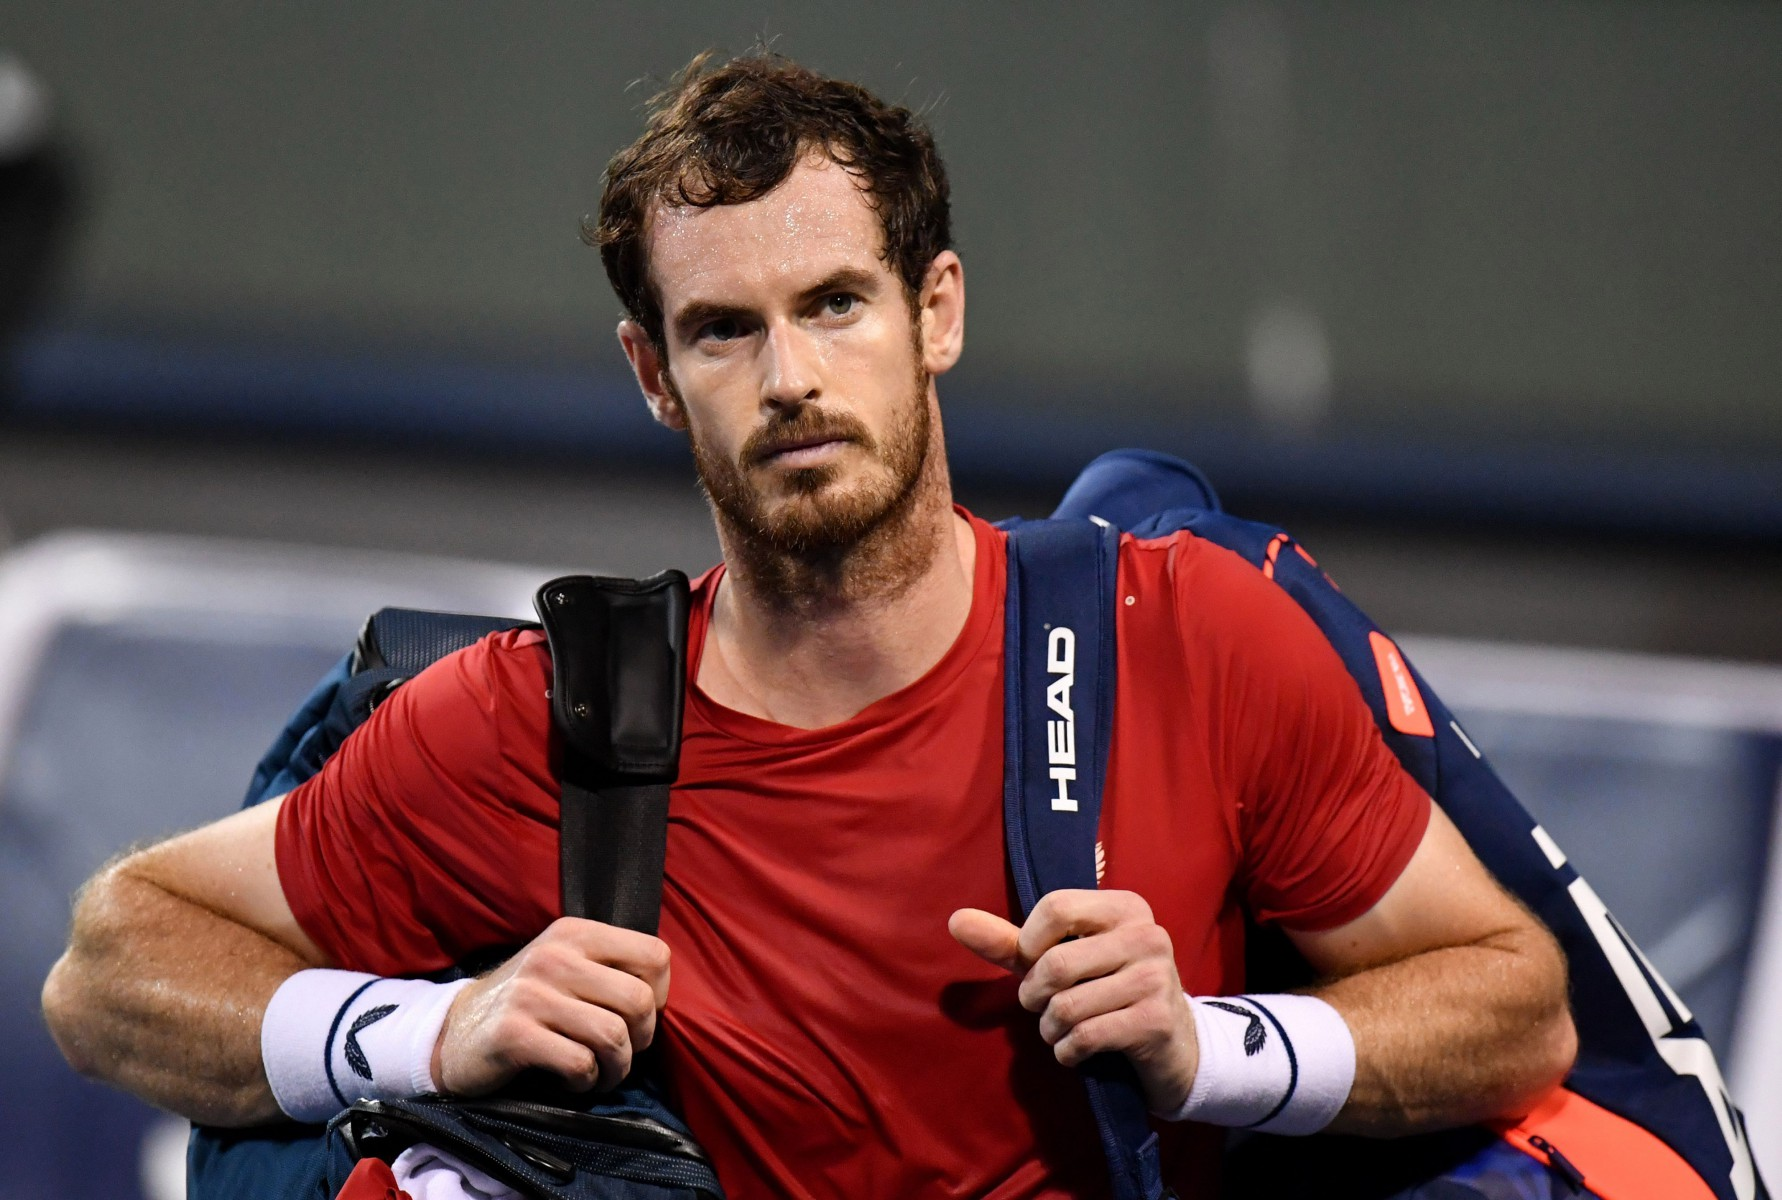 Murray finally fell 7-6 2-6 7-6 after more than three hours of battling on court and was left